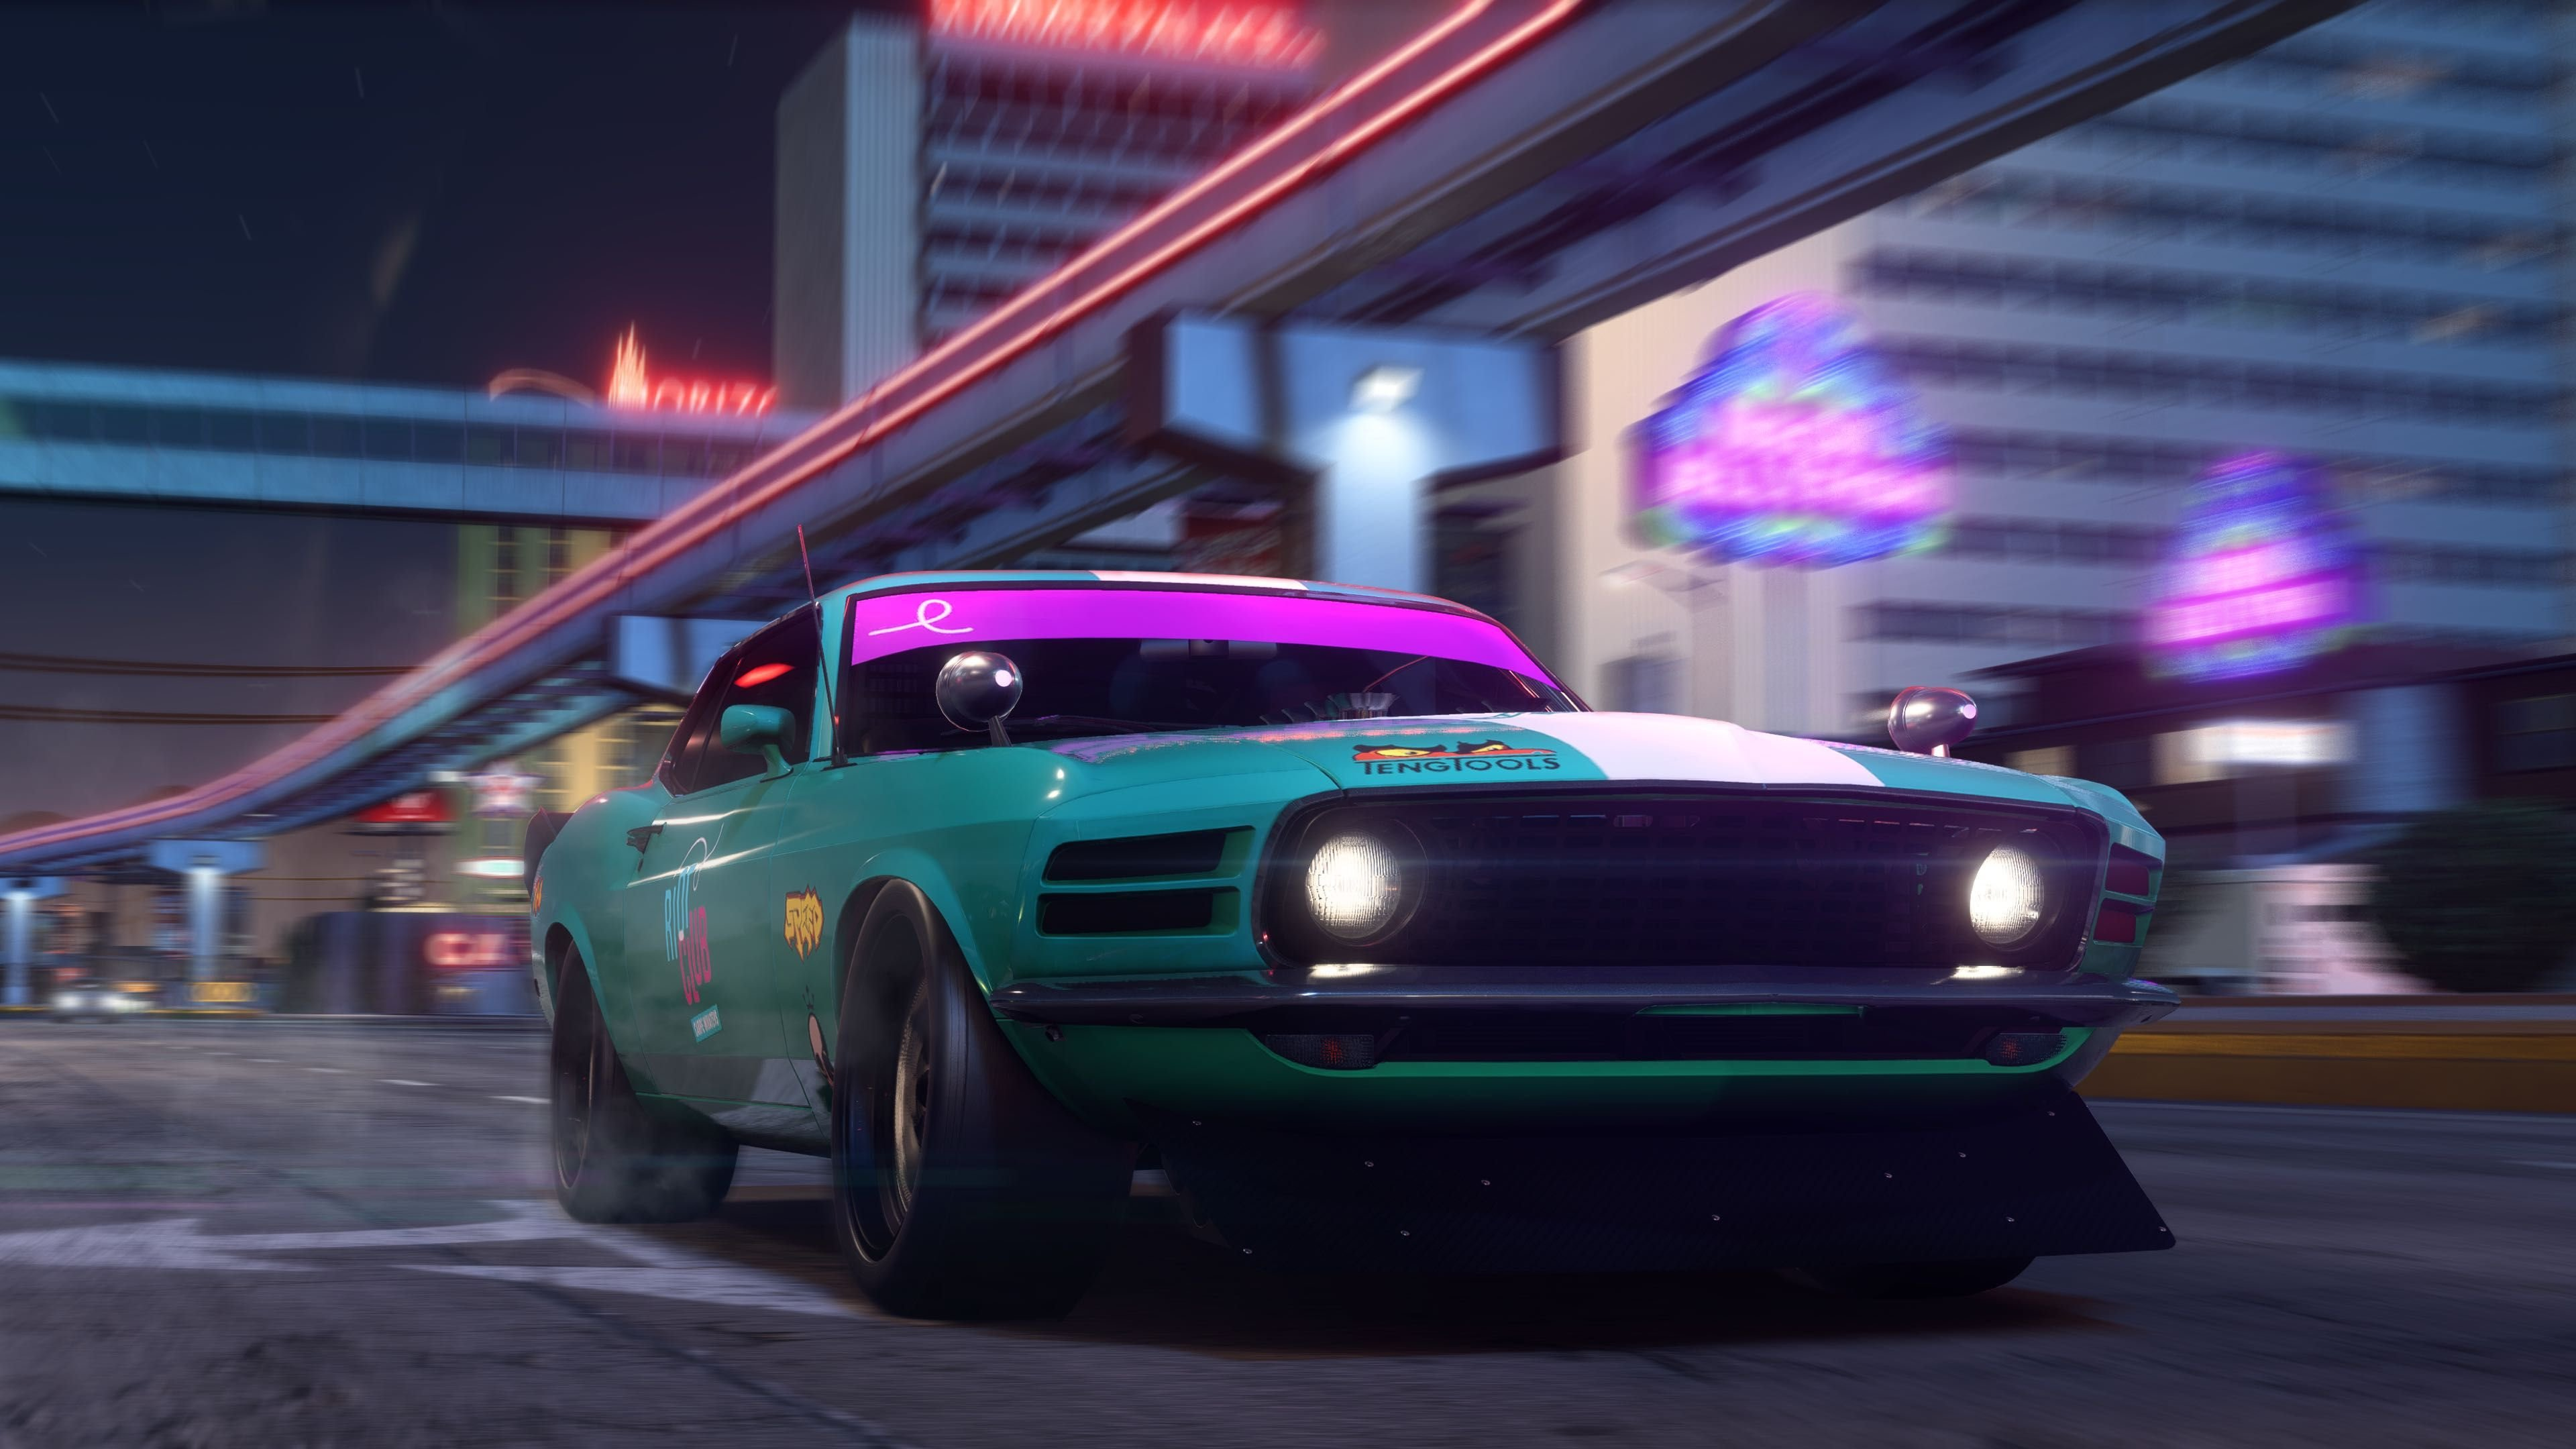 need for speed payback loading screen 4k gta5. Black Bedroom Furniture Sets. Home Design Ideas